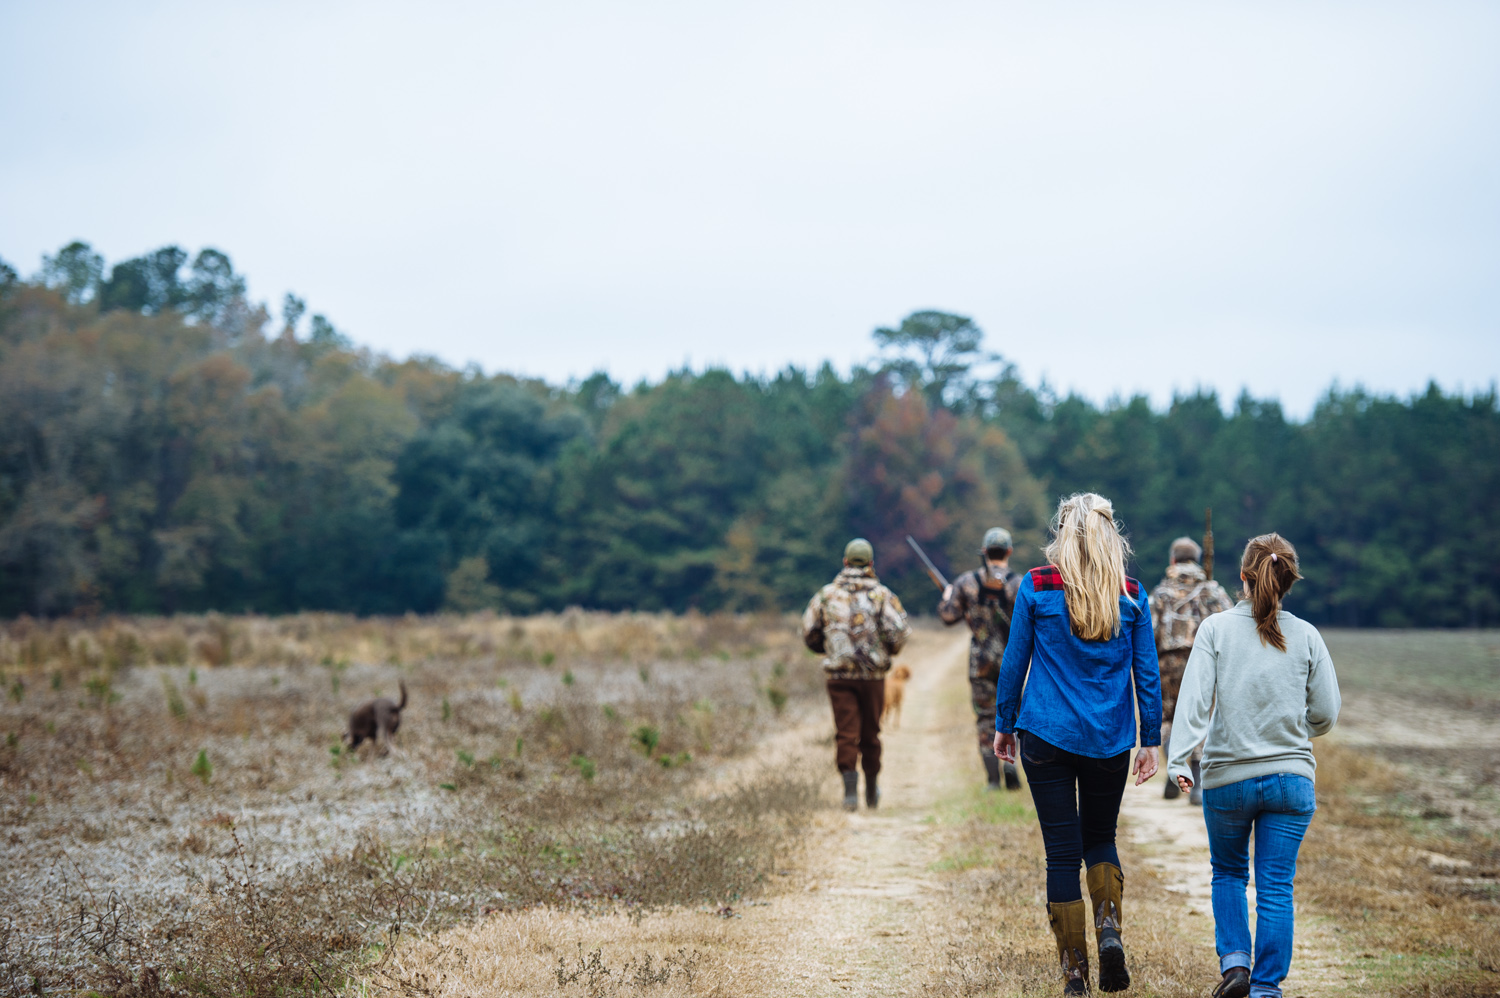 #skinnywaders2013 I THE2654PROJECT-3.jpg